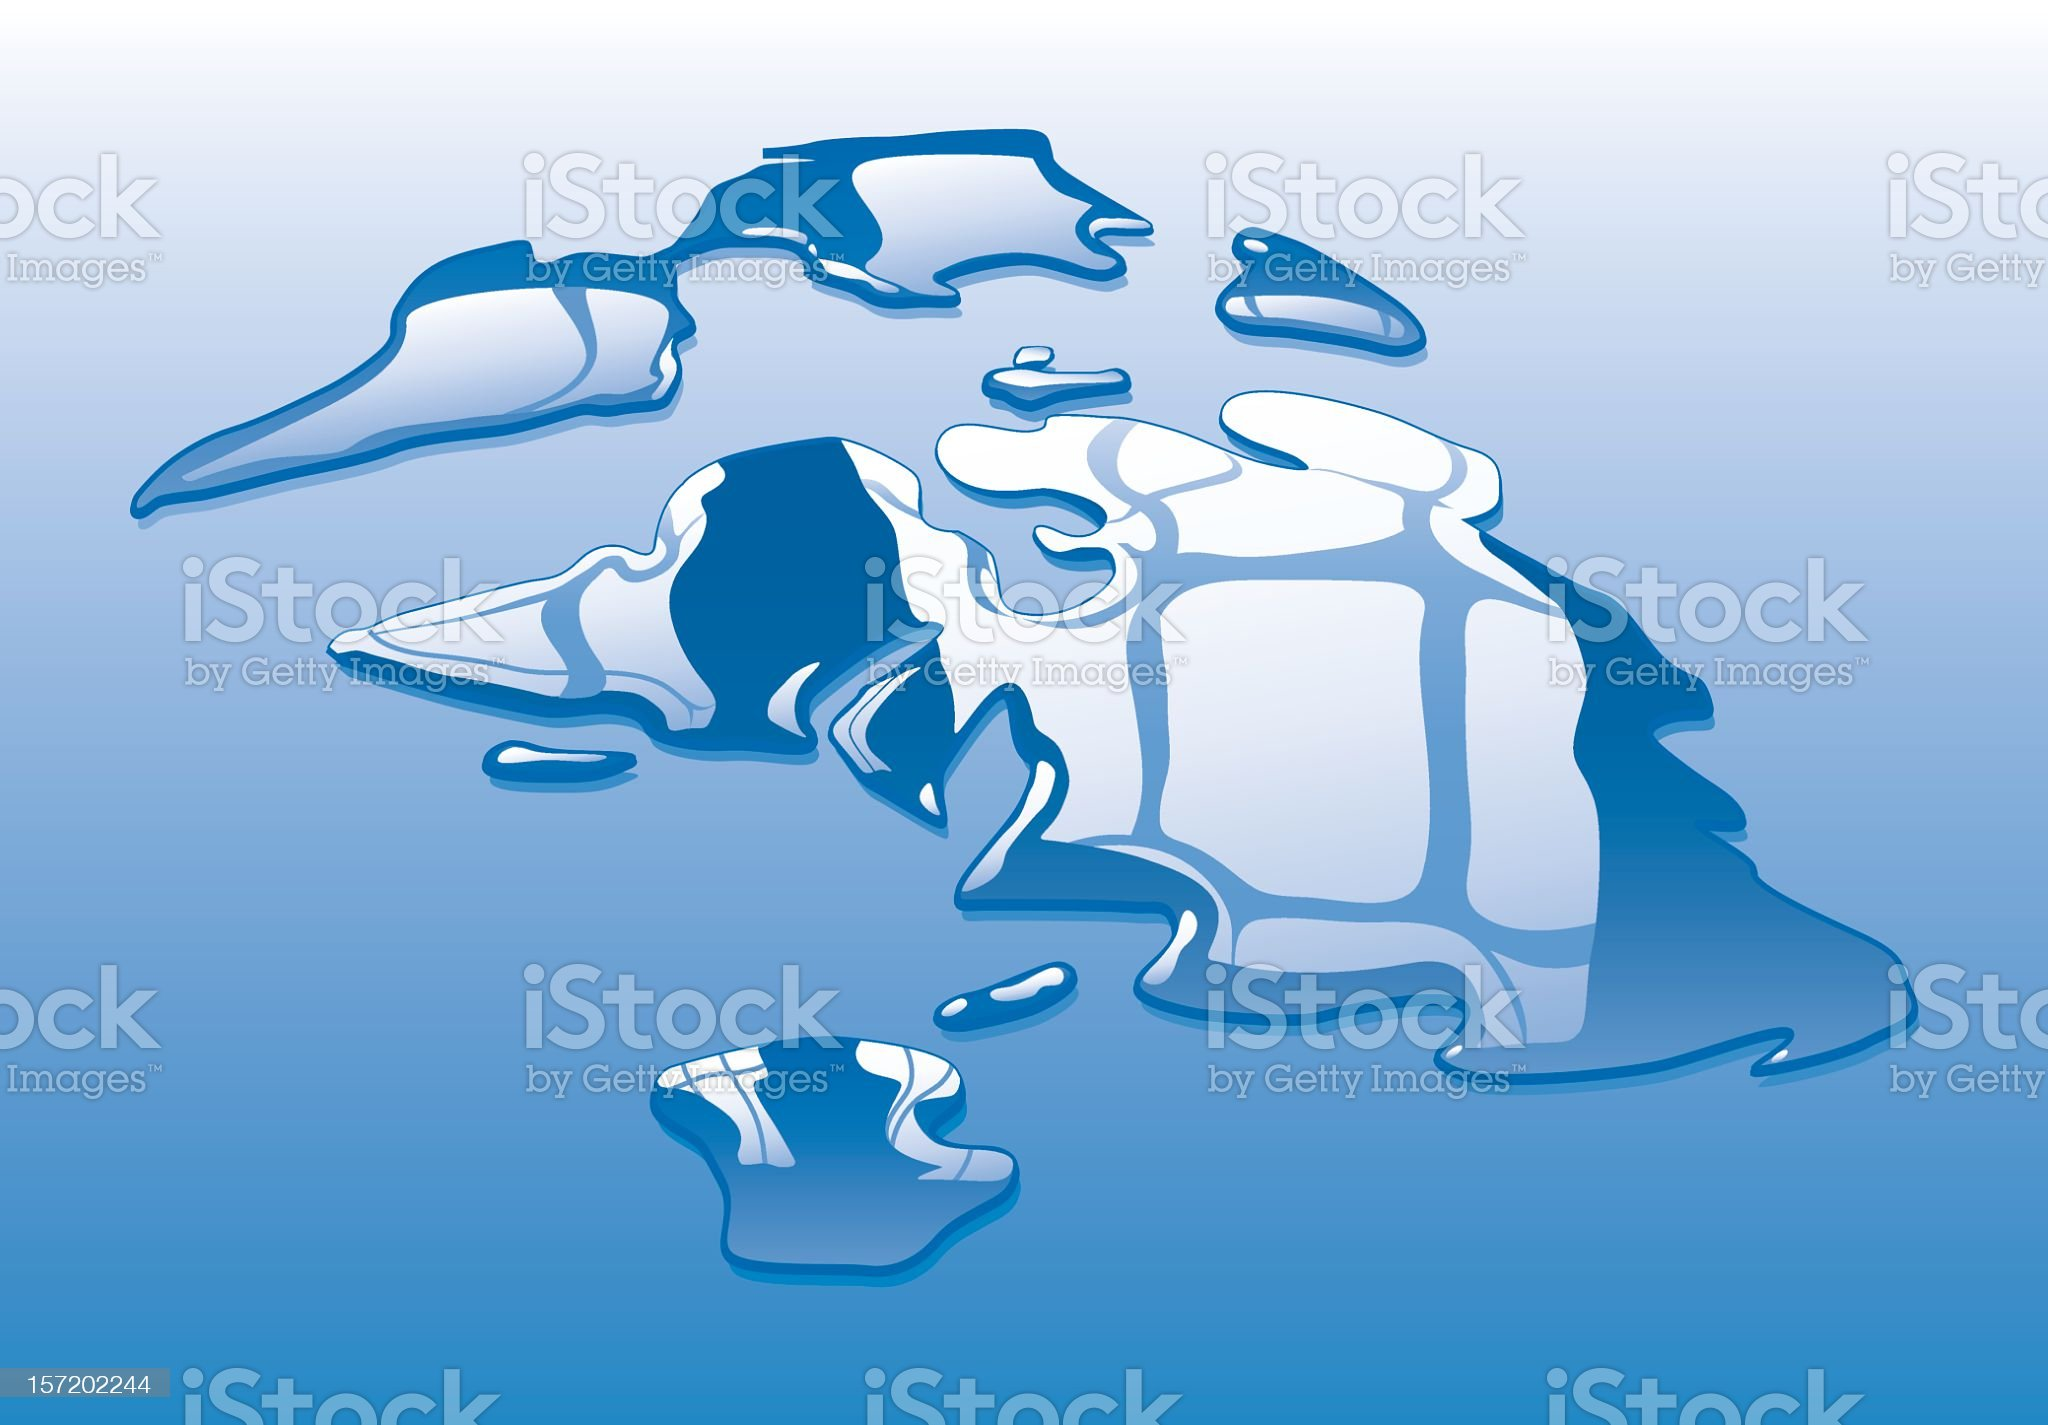 Blue liquid droplets forming a world map royalty-free stock vector art